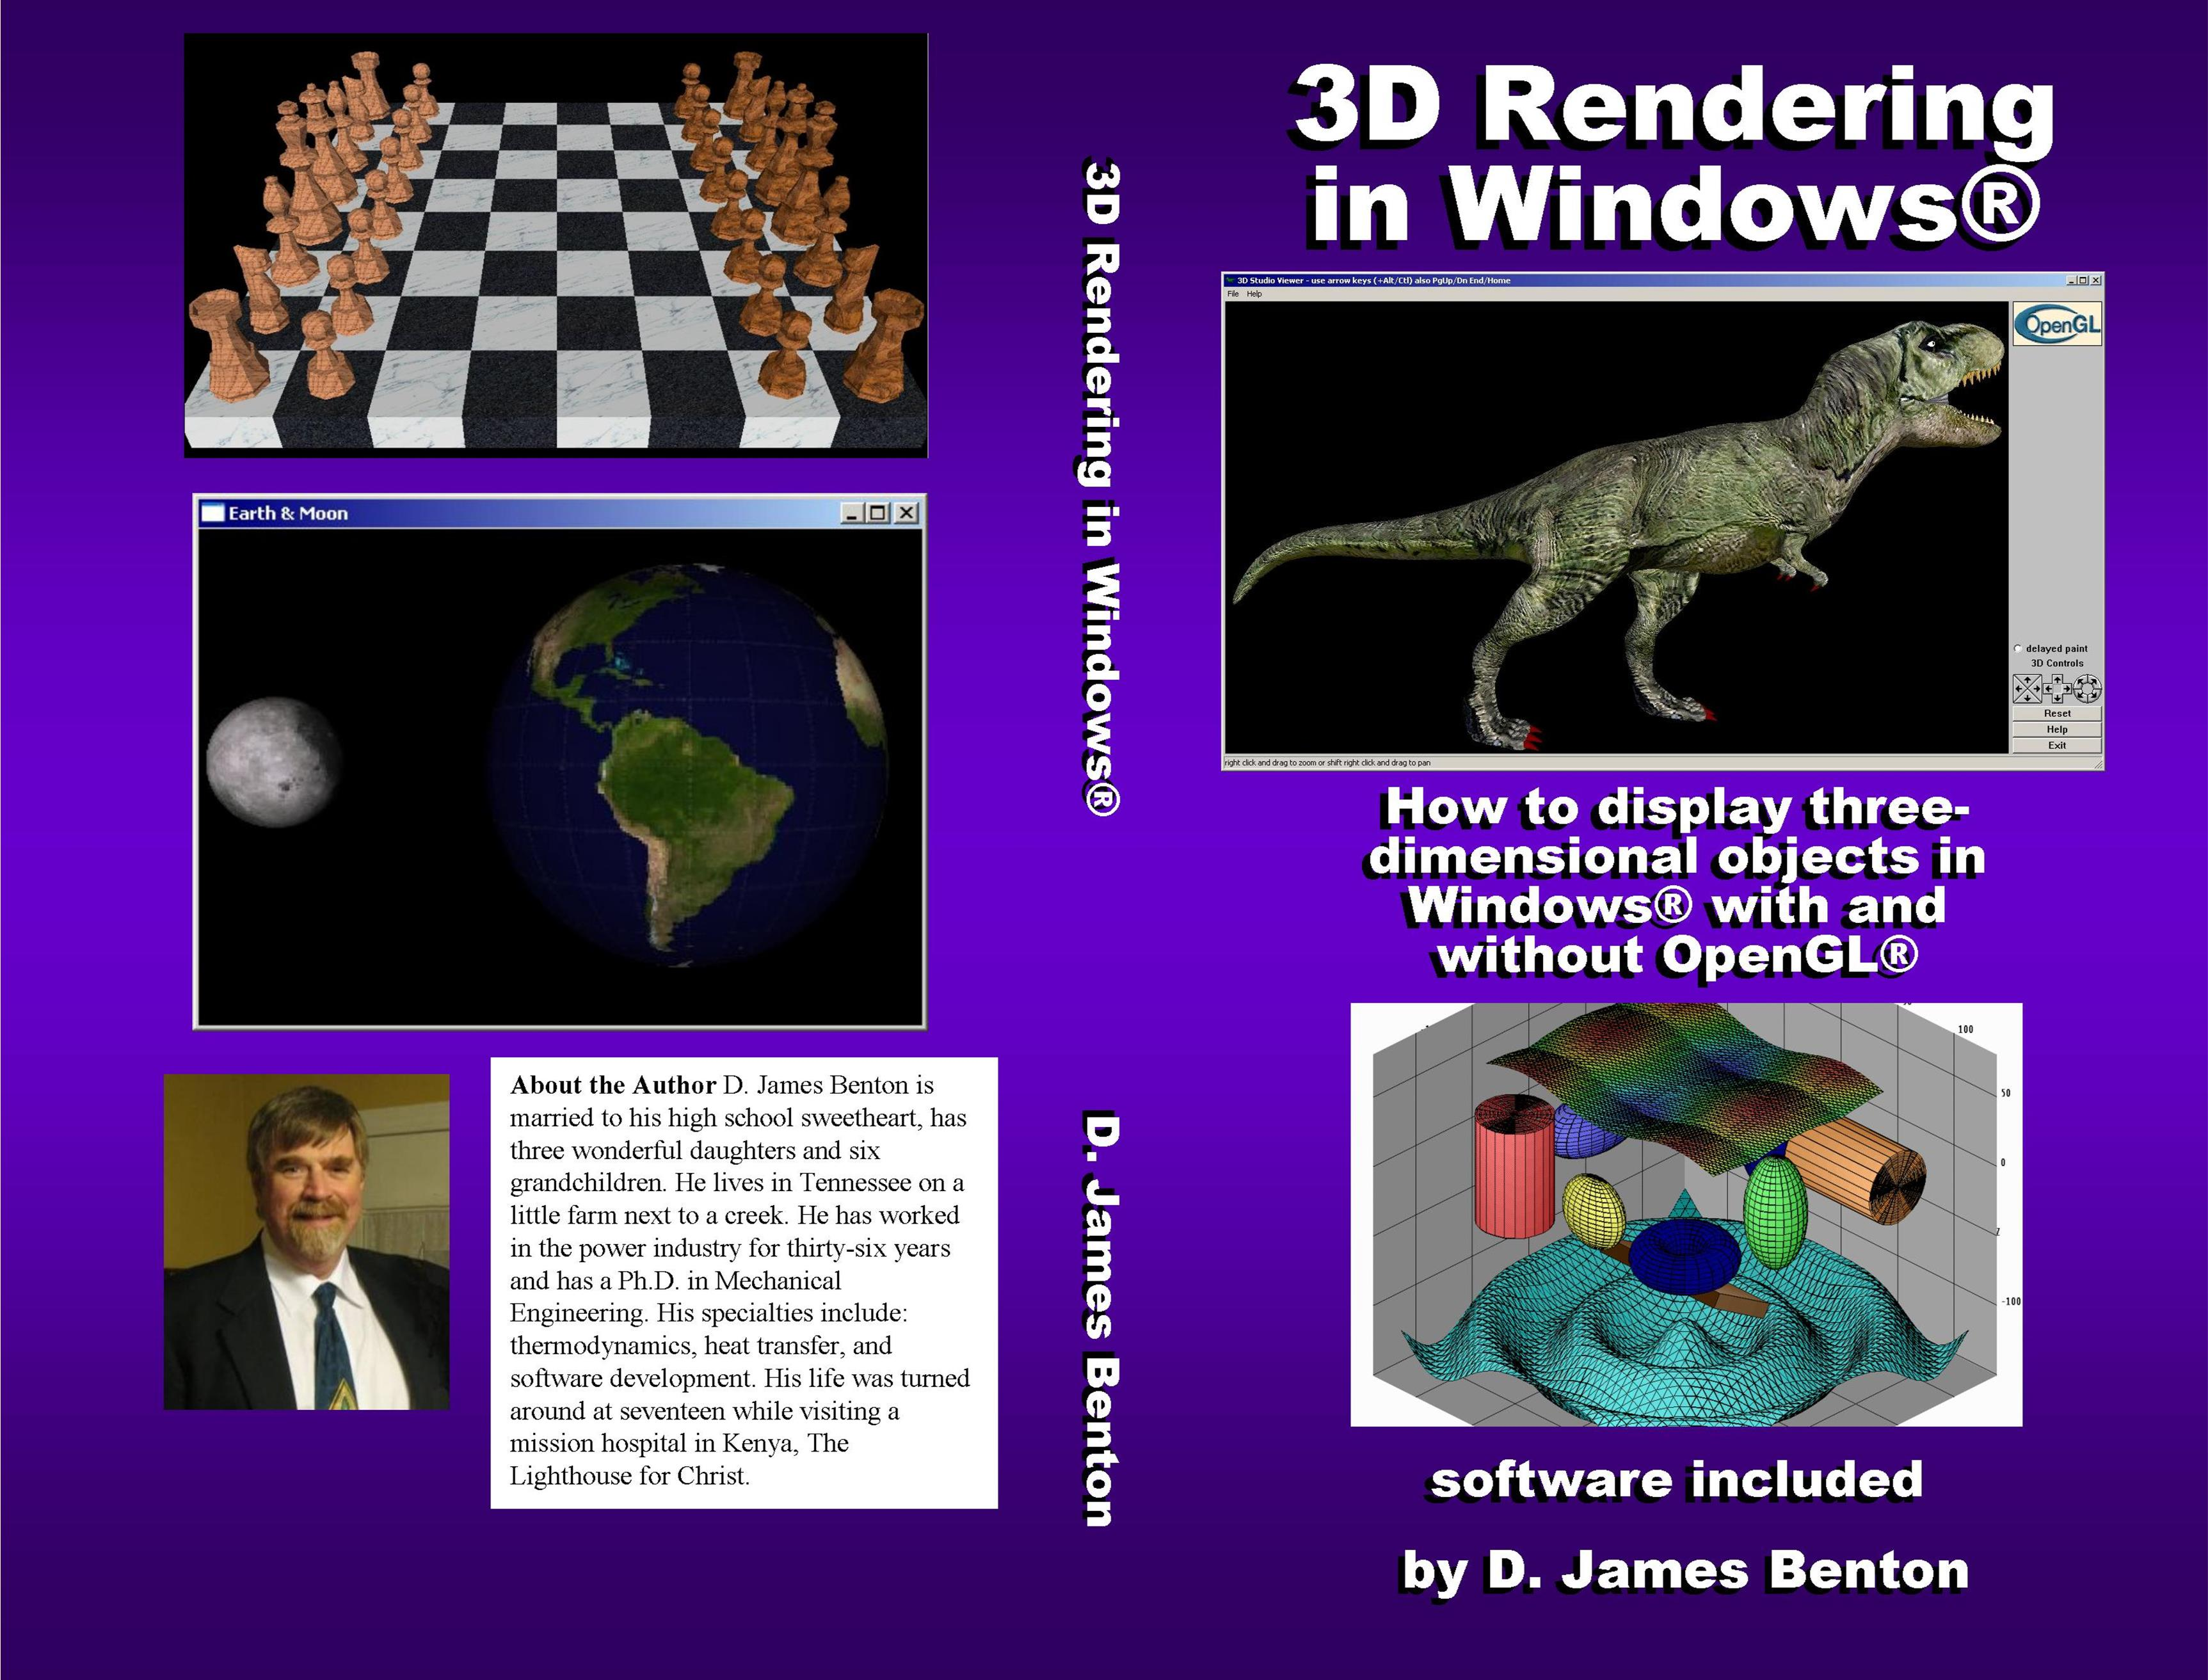 3D Rendering in Windows cover image